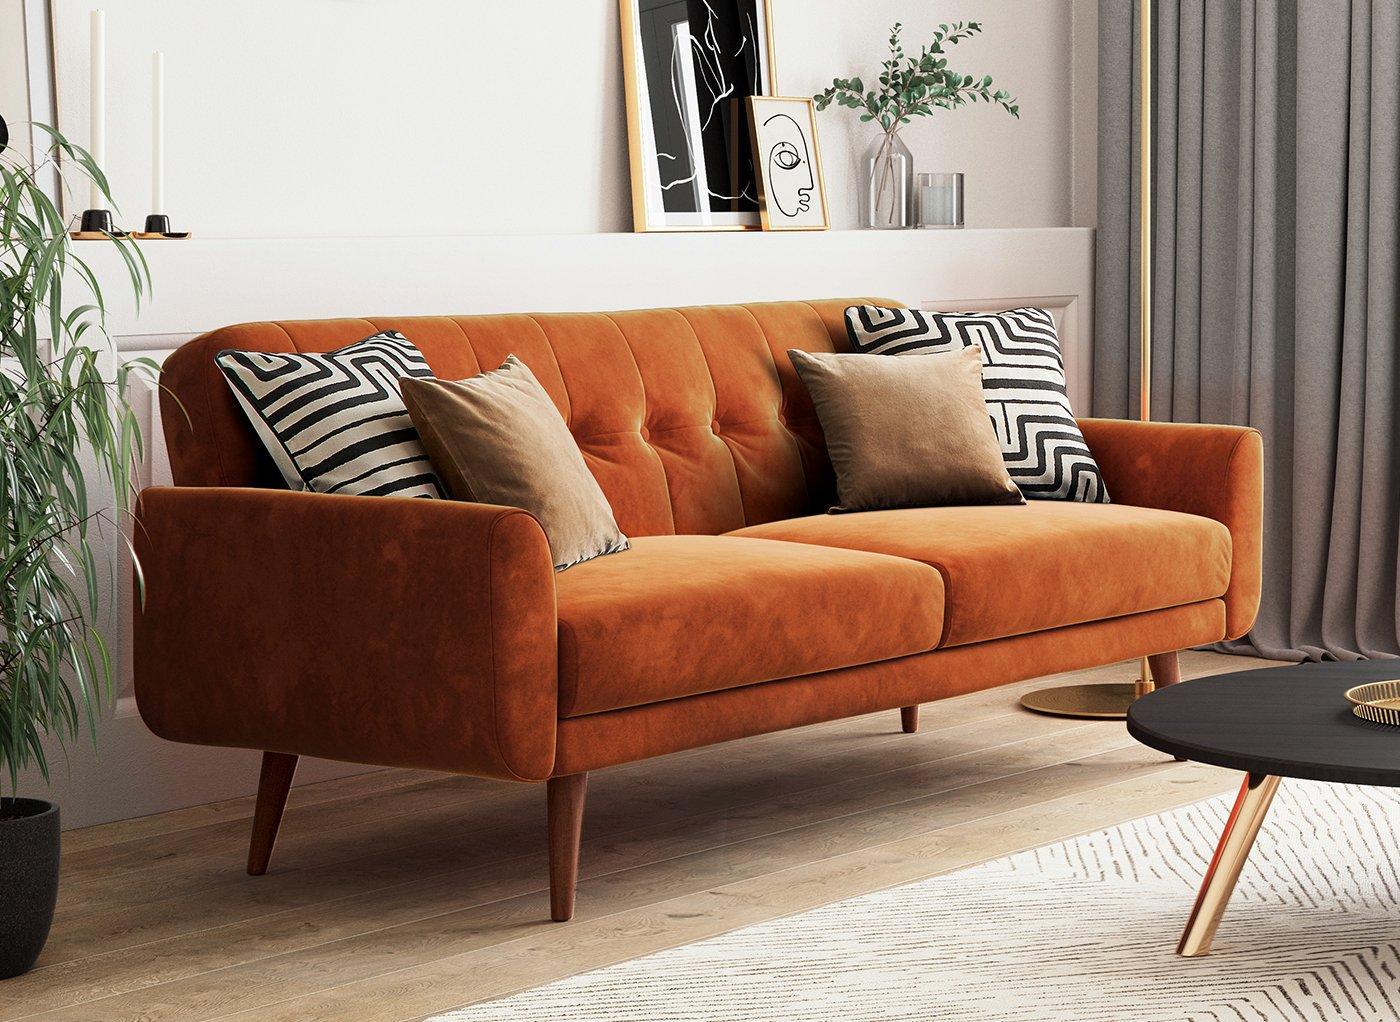 gallway-3-seater-clic-clac-sofa-bed